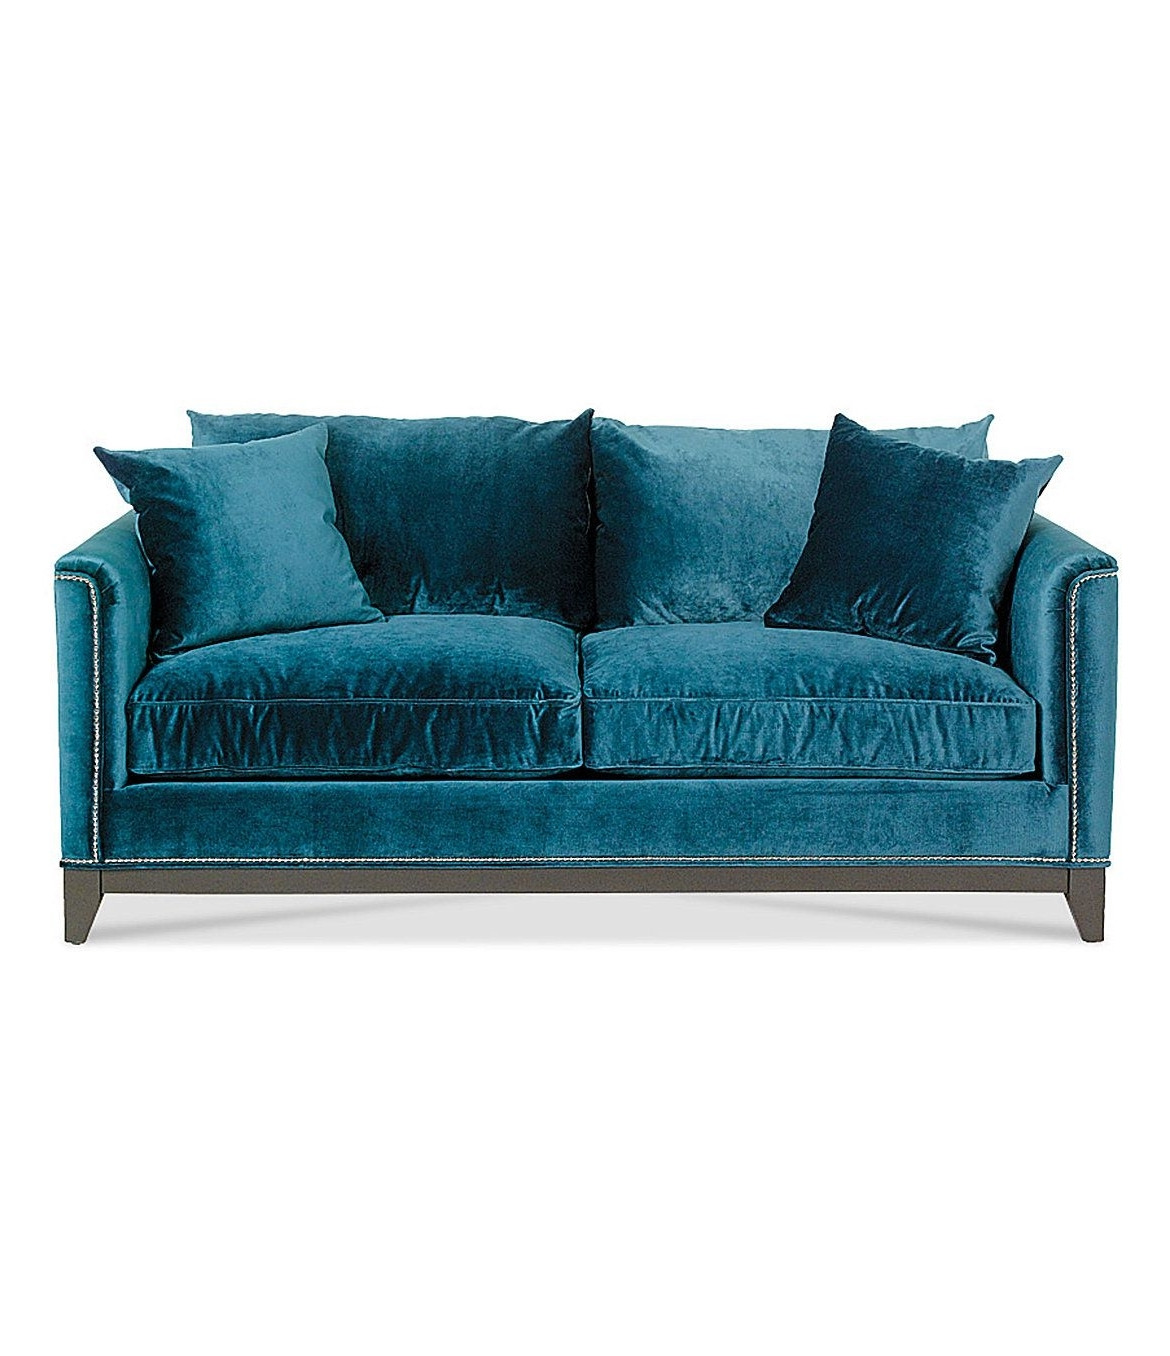 "Jonathan Louis ""mystere"" Sofa From Dillard's $699! This Just Could Regarding Most Popular Dillards Sectional Sofas (View 11 of 15)"